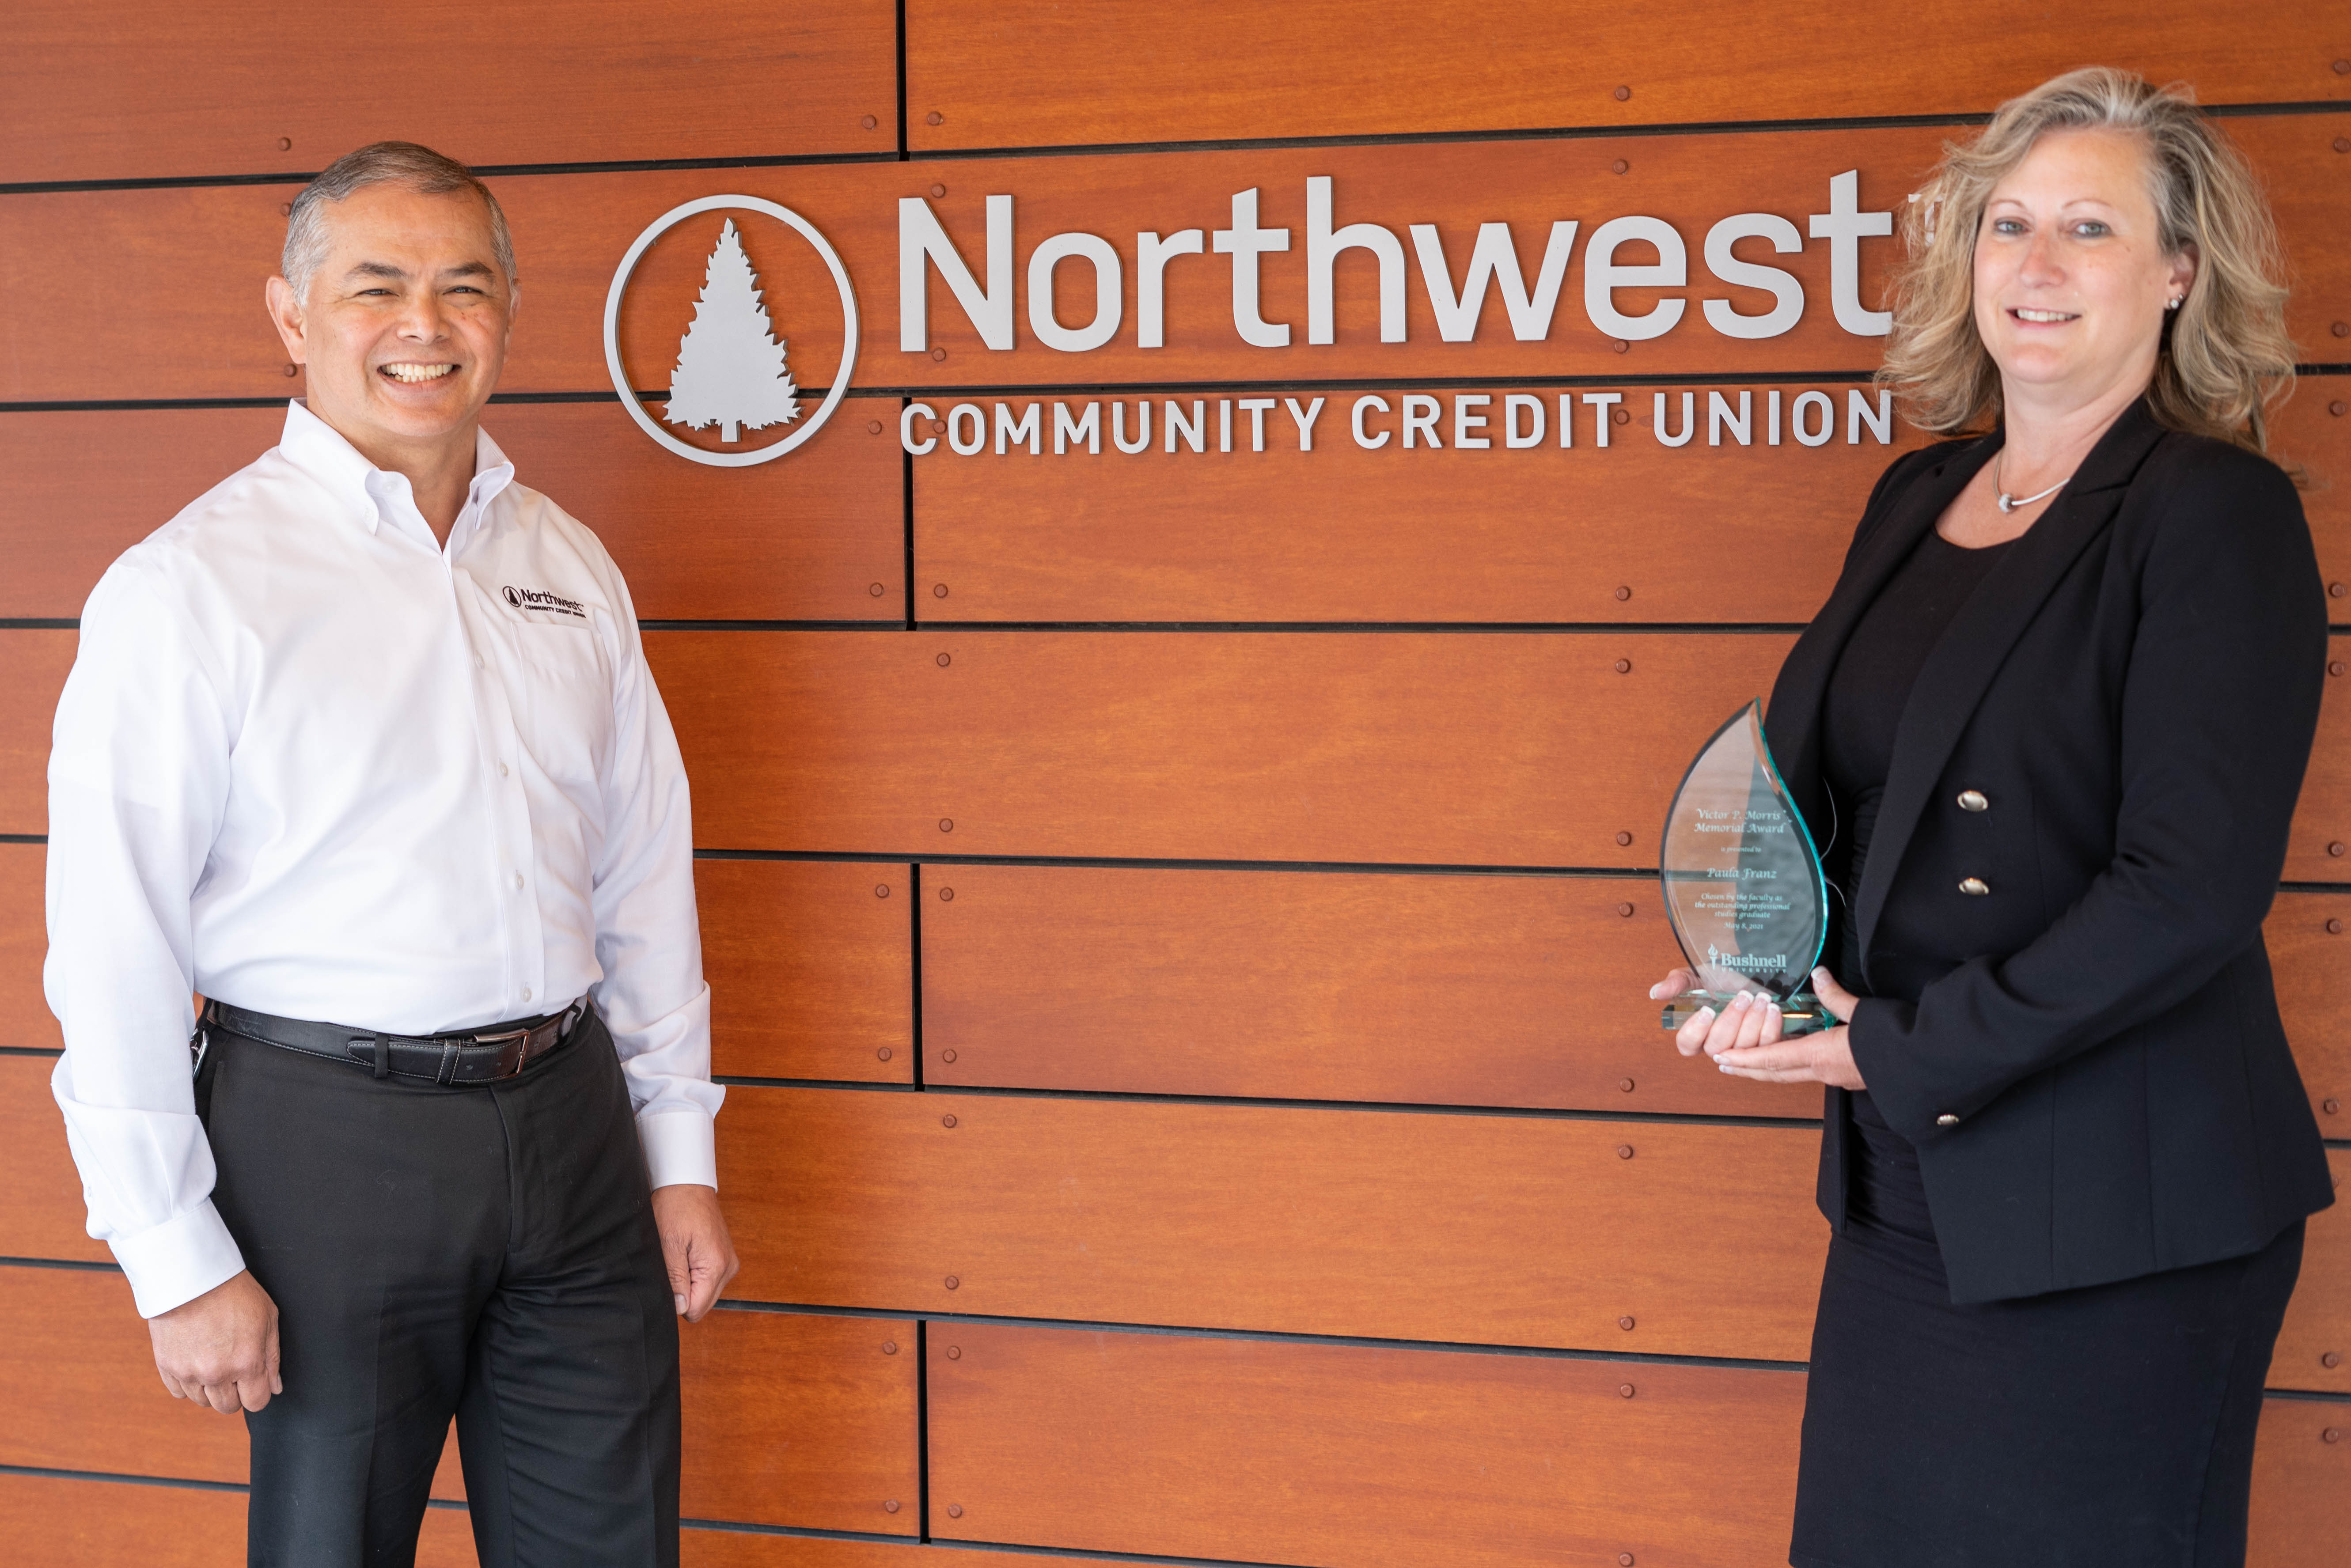 NWCU's CEO John Iglesias with Paula Franz, recipient of the V.P. Morris Award for Outstanding Professional Studies